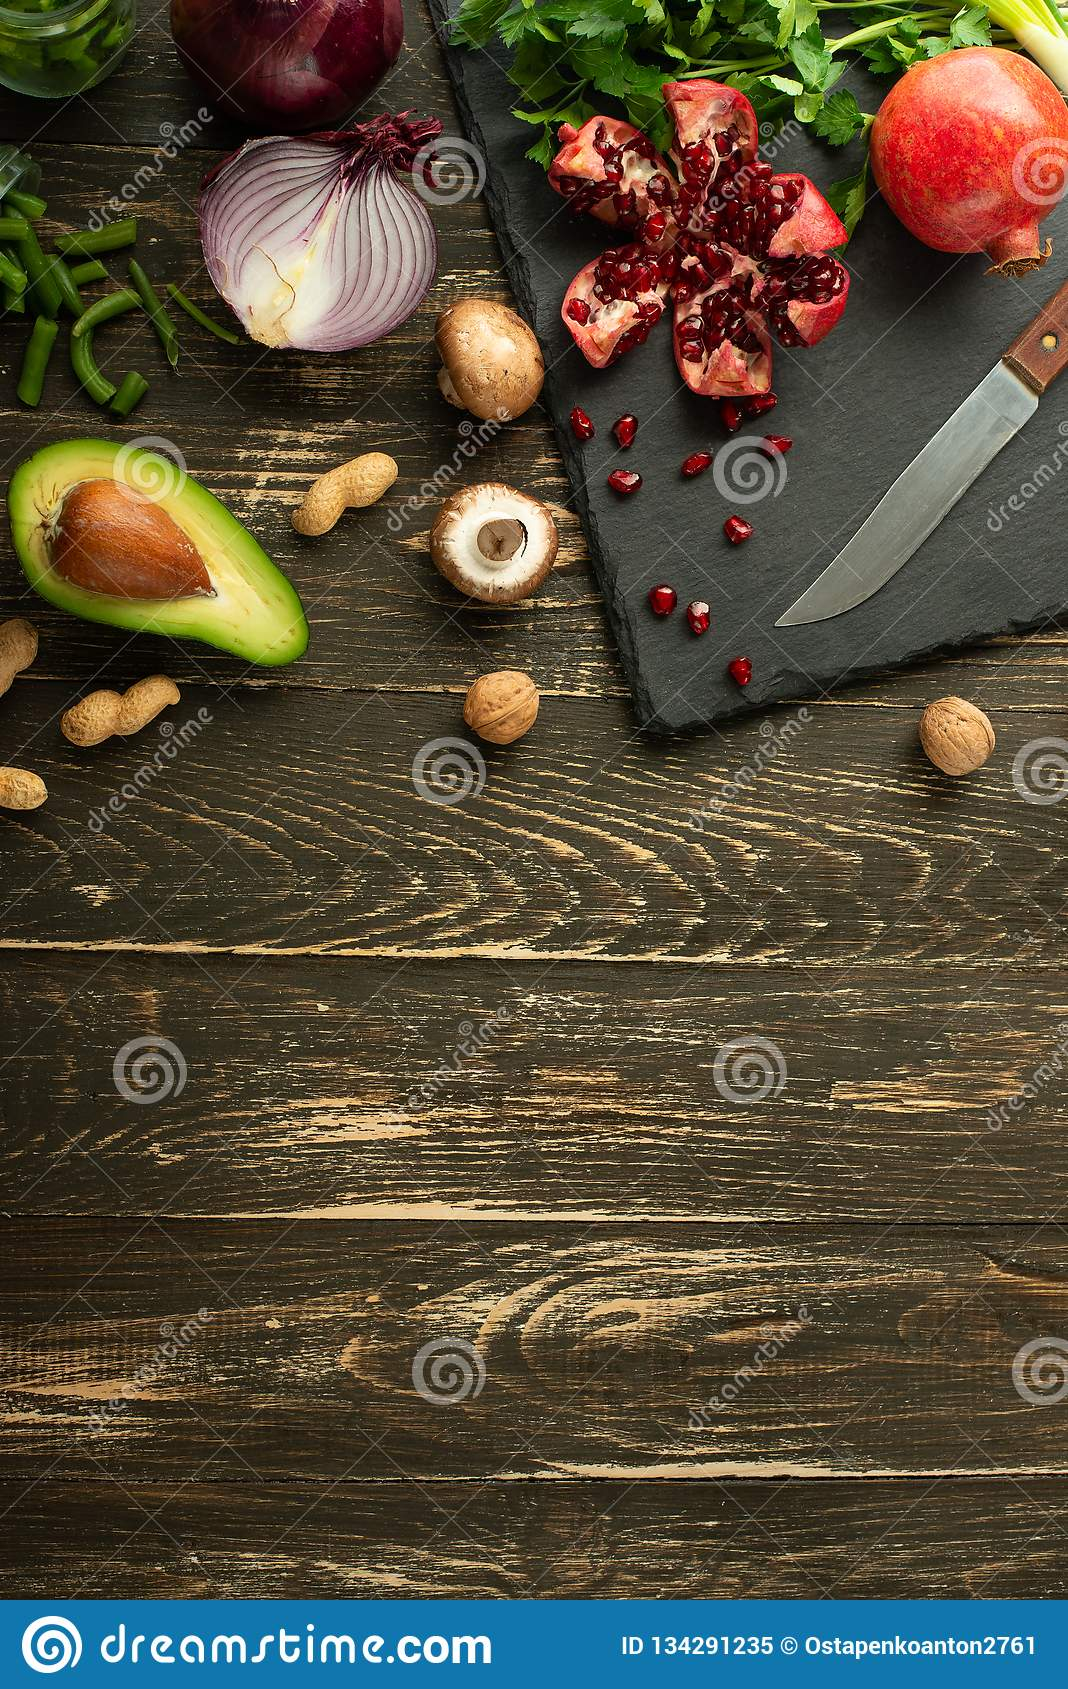 Vegan food, detox, avocado, fruit, green beans, broccoli, nuts and mushrooms. Diet and healthy food, vitamins and sports. Flat-lay